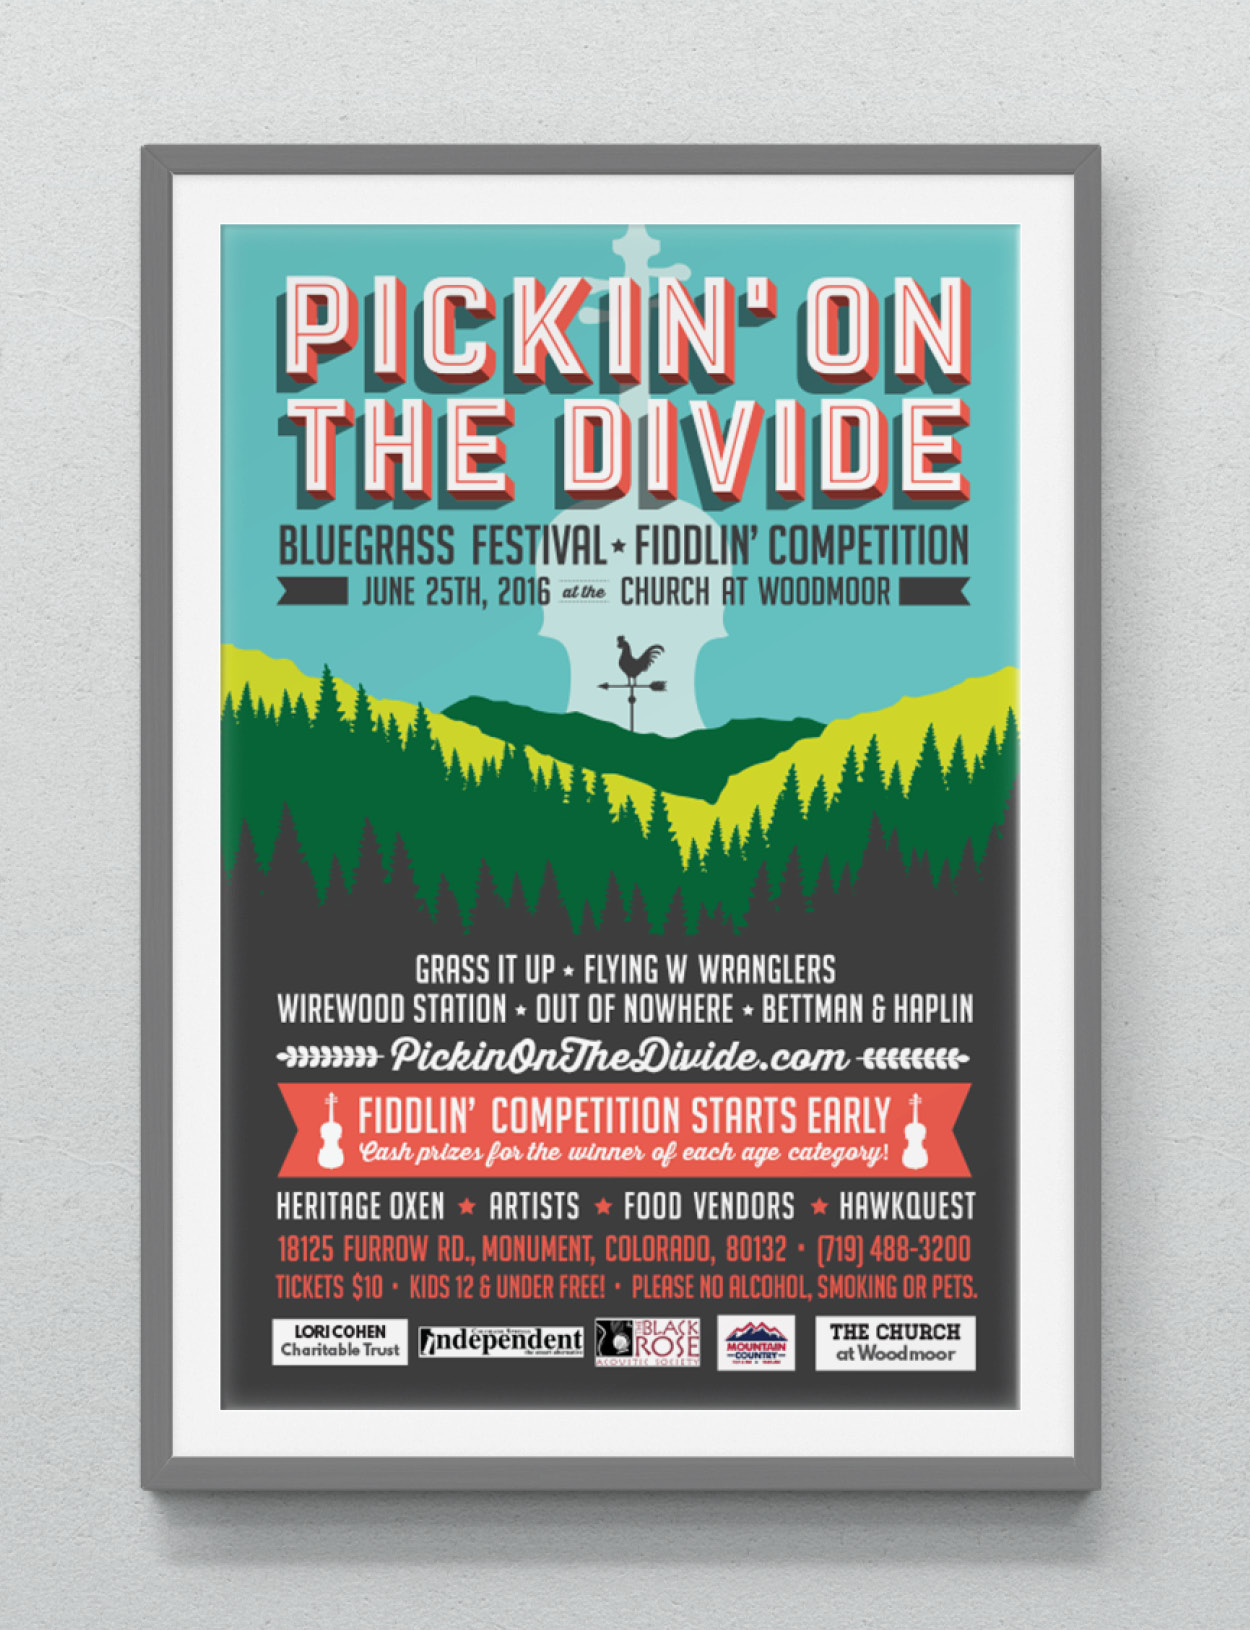 PICKIN' ON THE DIVIDE 2016